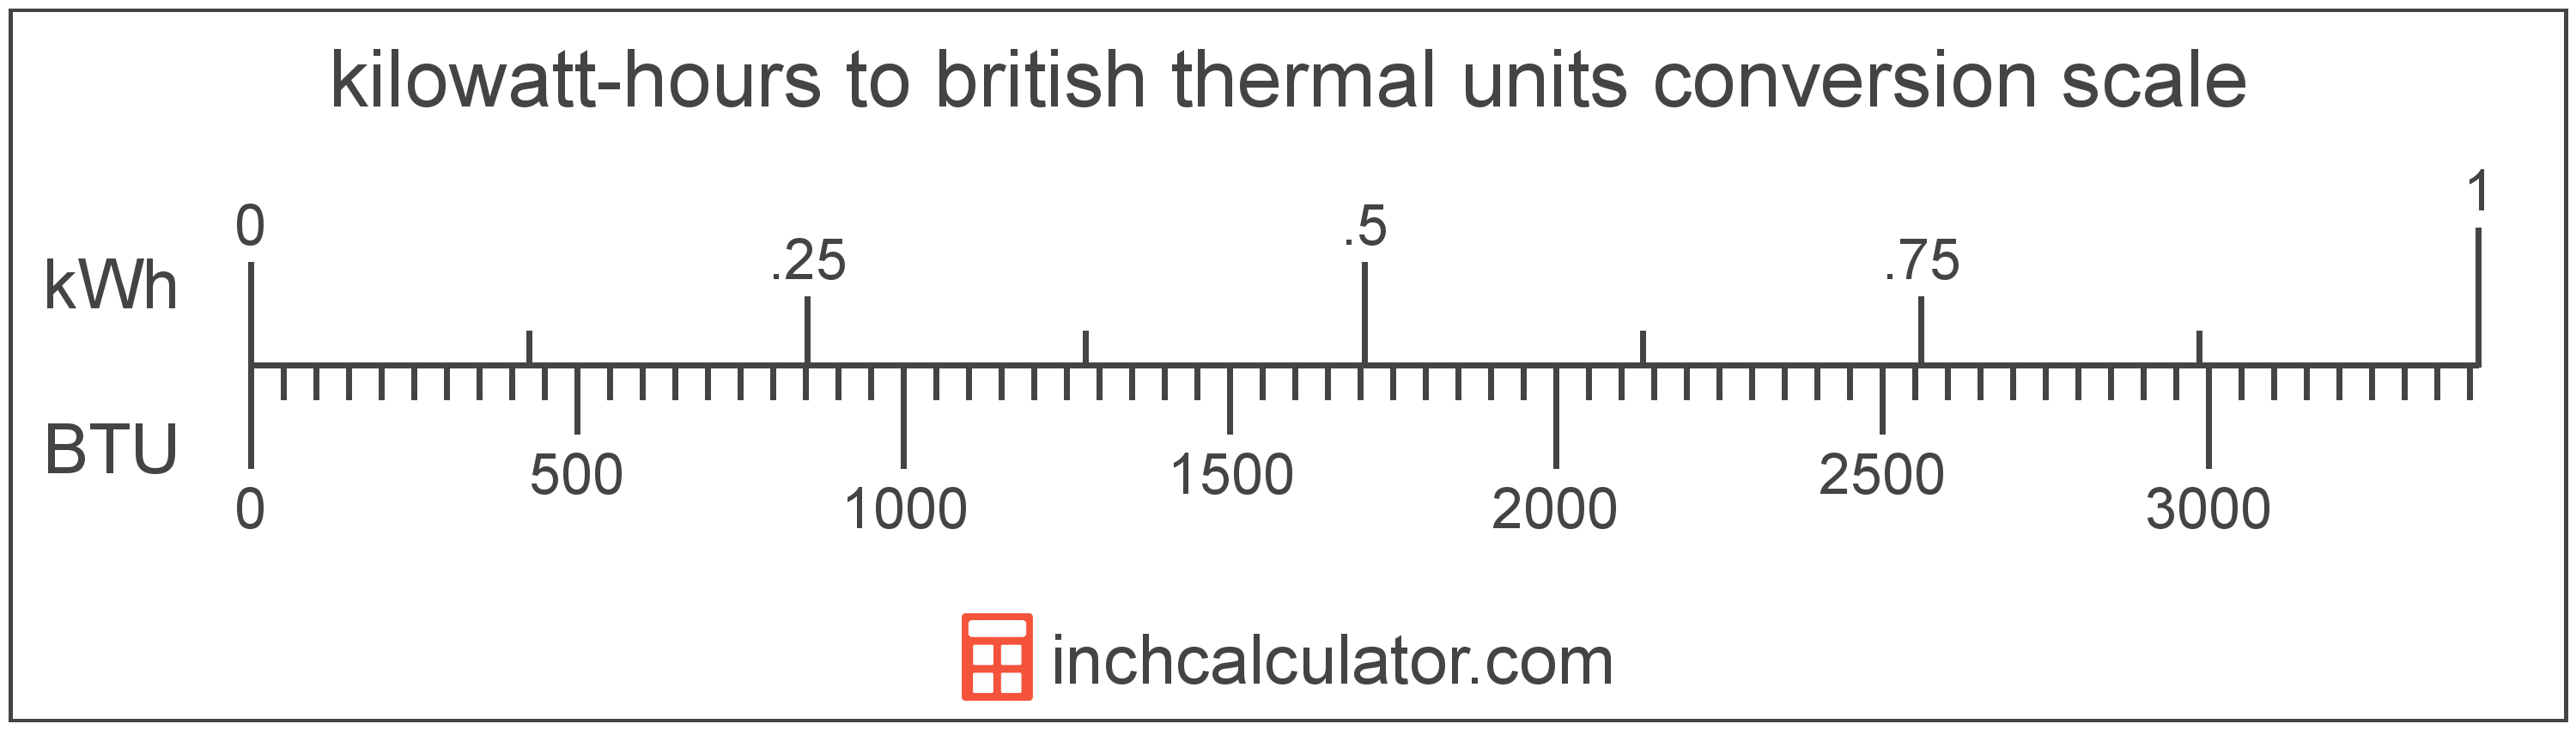 conversion scale showing british thermal units and equivalent kilowatt-hours energy values